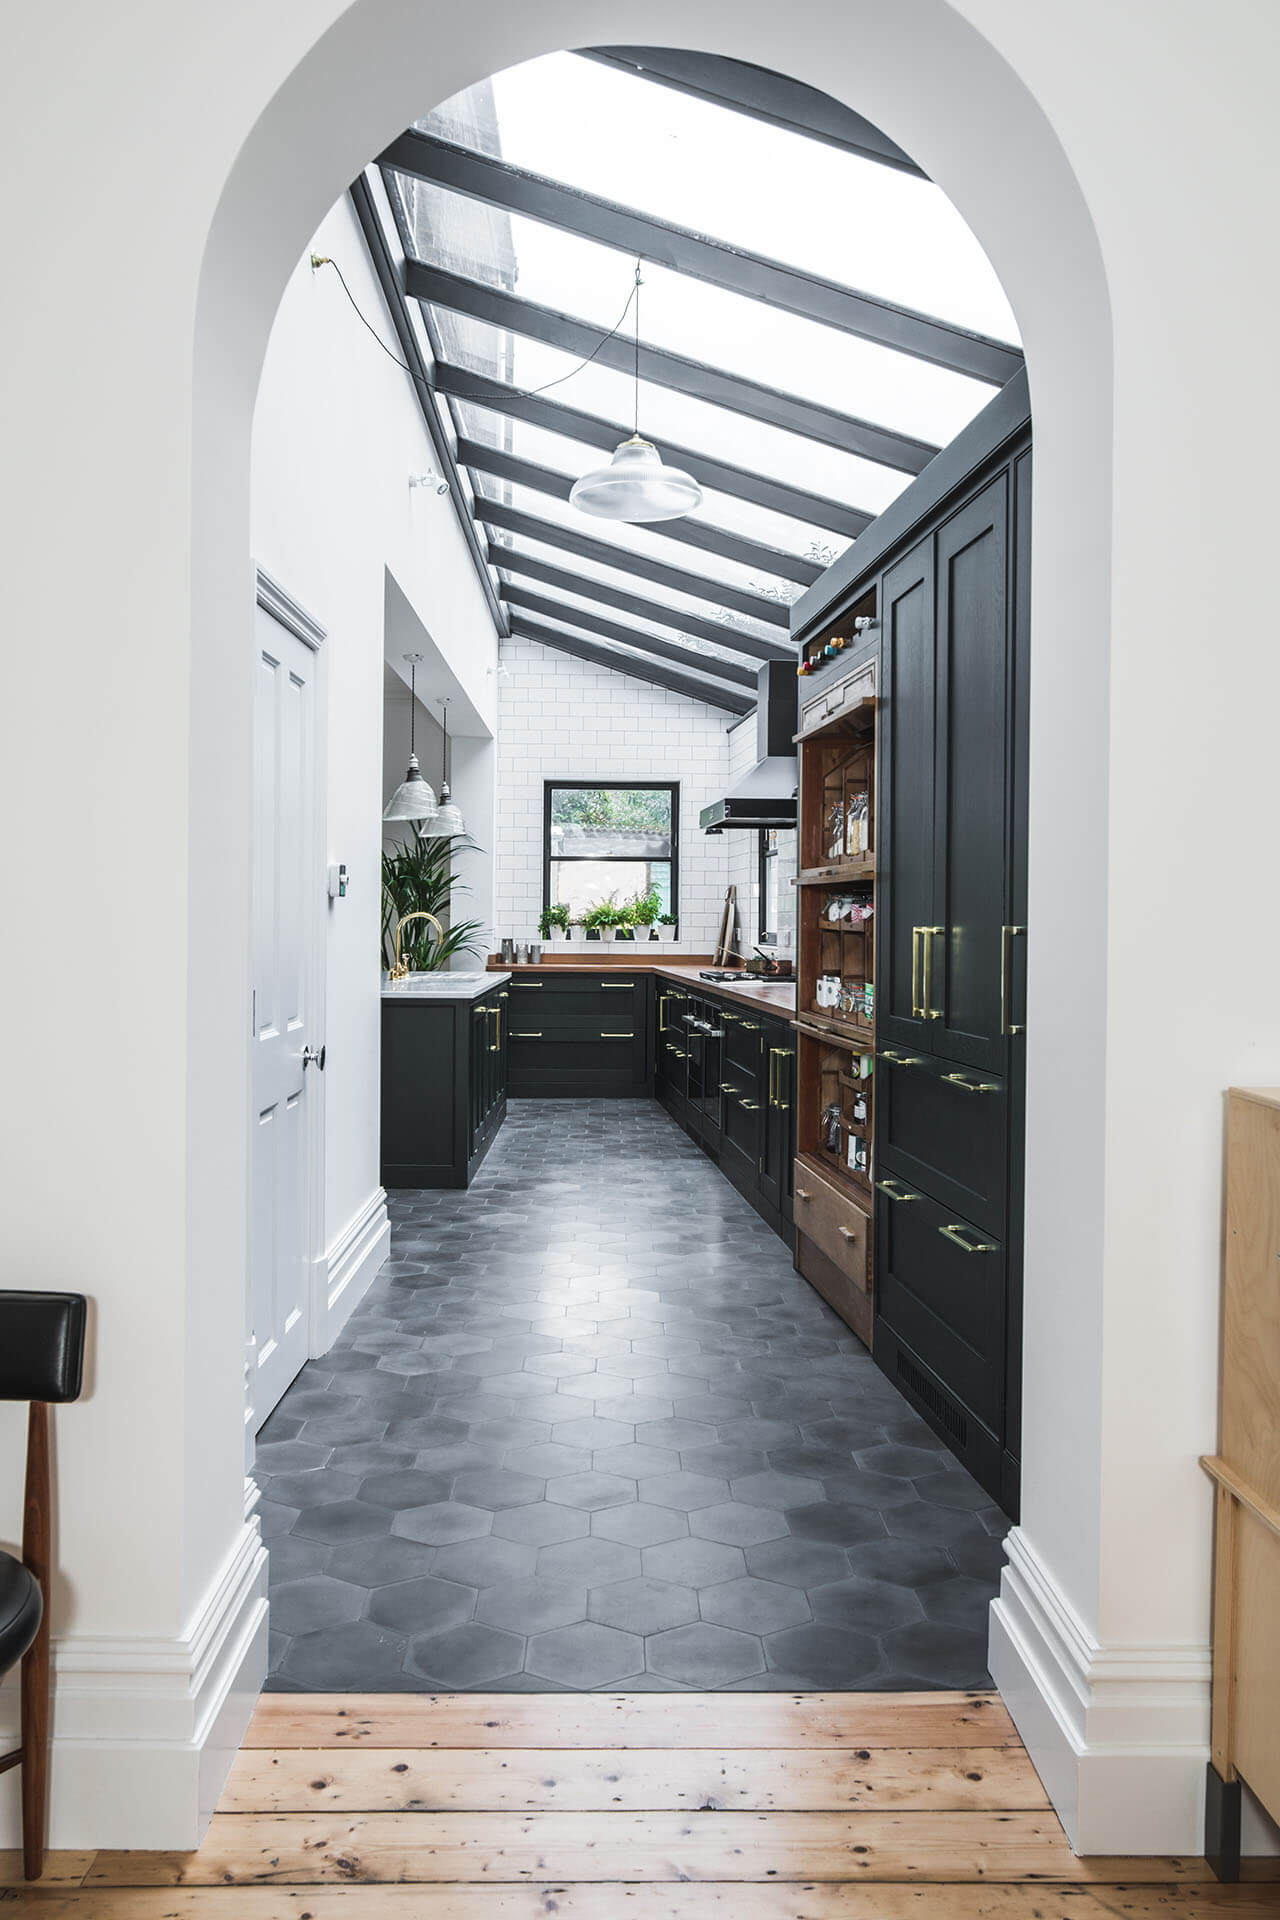 Dark Green Shaker kitchen in lean-to extension hand painted in Obsidian Green (216) by Little Green with hexagonal concrete tiles